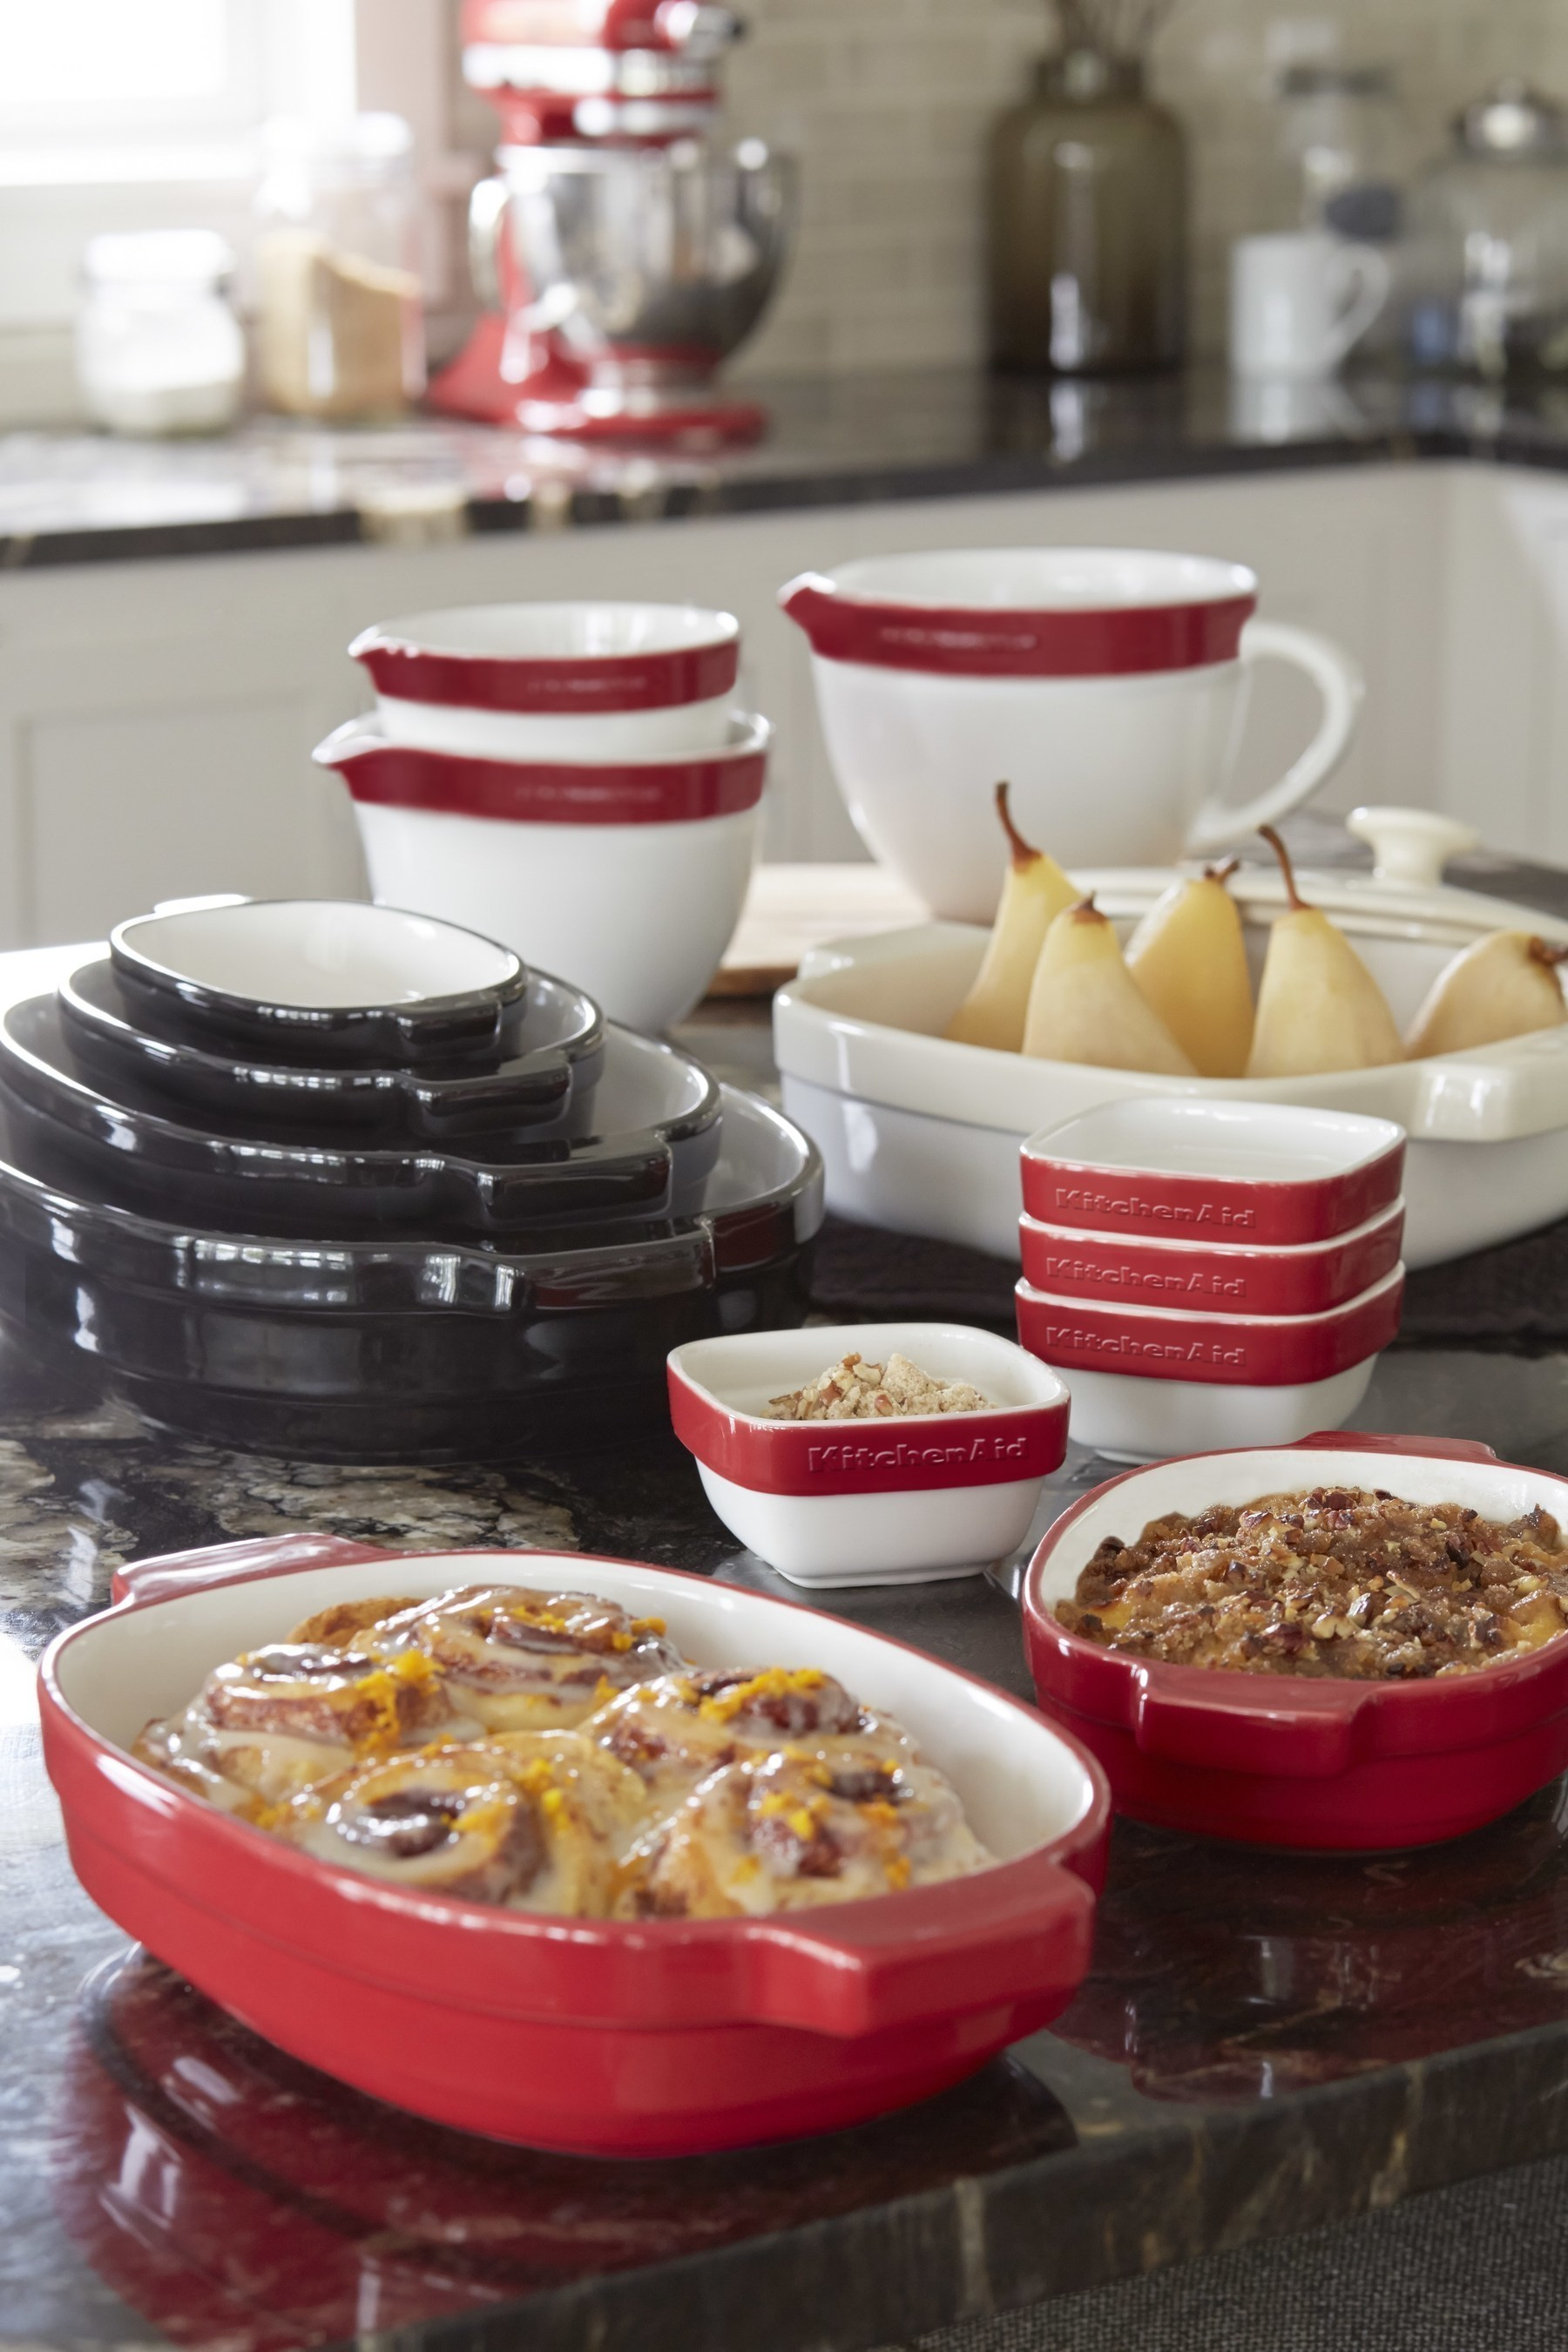 Covetable KitchenAid' Cookware Gifts For Mother's Day